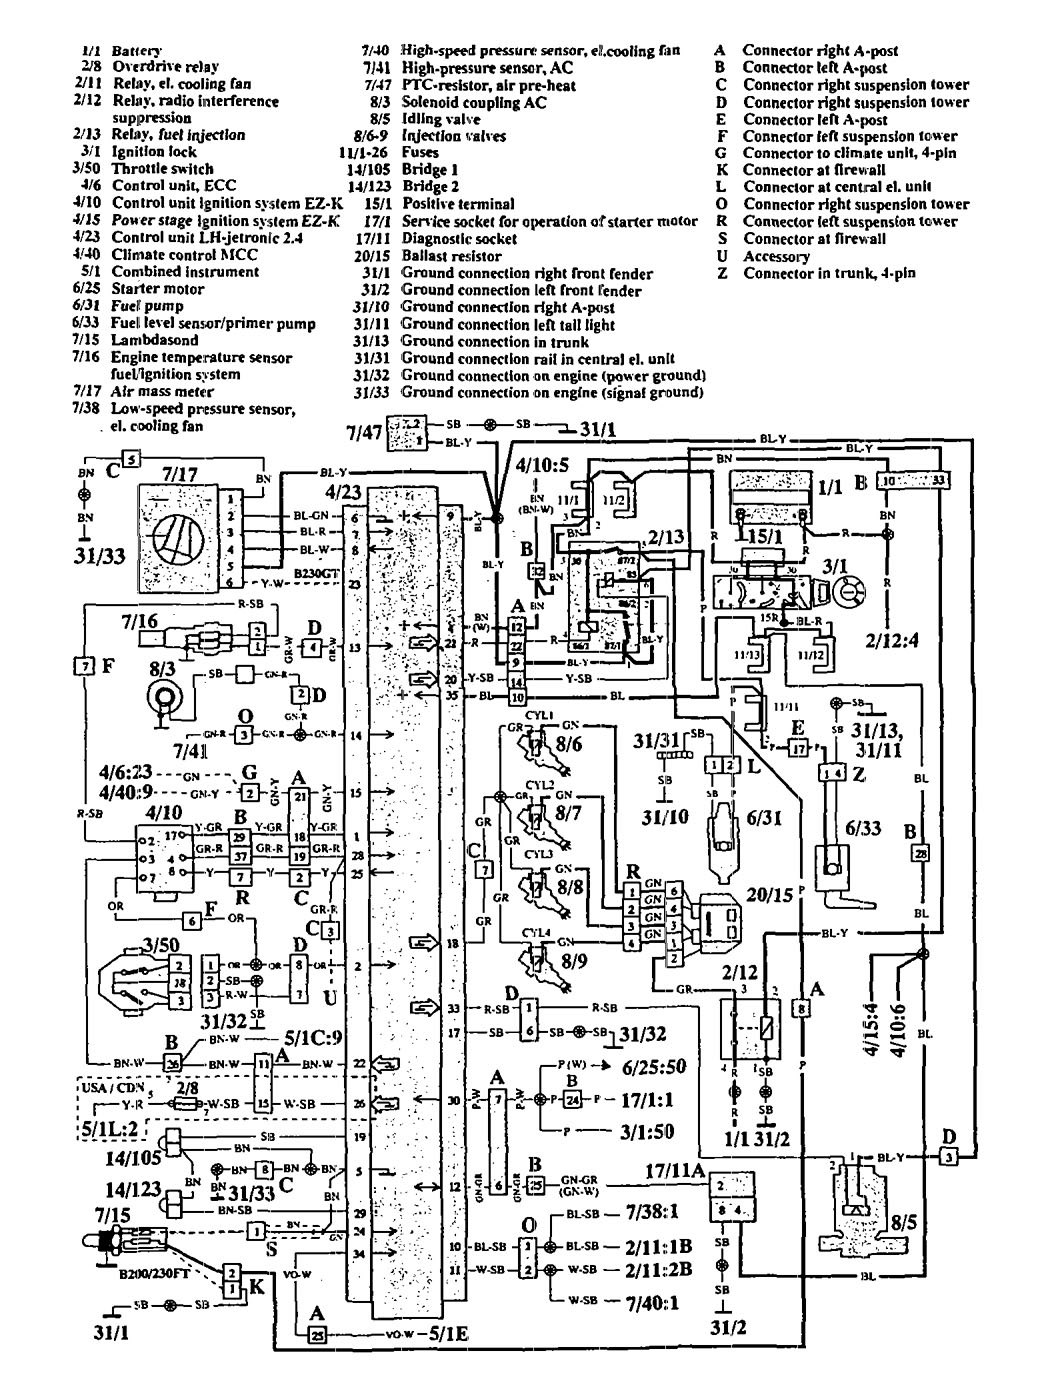 WRG-6981] Volvo Fm12 Wiring Diagram Free Download on volvo brakes, volvo 740 diagram, volvo exhaust, volvo yaw rate sensor, volvo dashboard, volvo girls, volvo s60 fuse diagram, volvo fuse box location, international truck electrical diagrams, volvo recall information, volvo xc90 fuse diagram, volvo type r, volvo battery, volvo truck radio wiring harness, volvo tools, volvo relay diagram, volvo sport, volvo maintenance schedule, volvo ignition, volvo snowmobile,